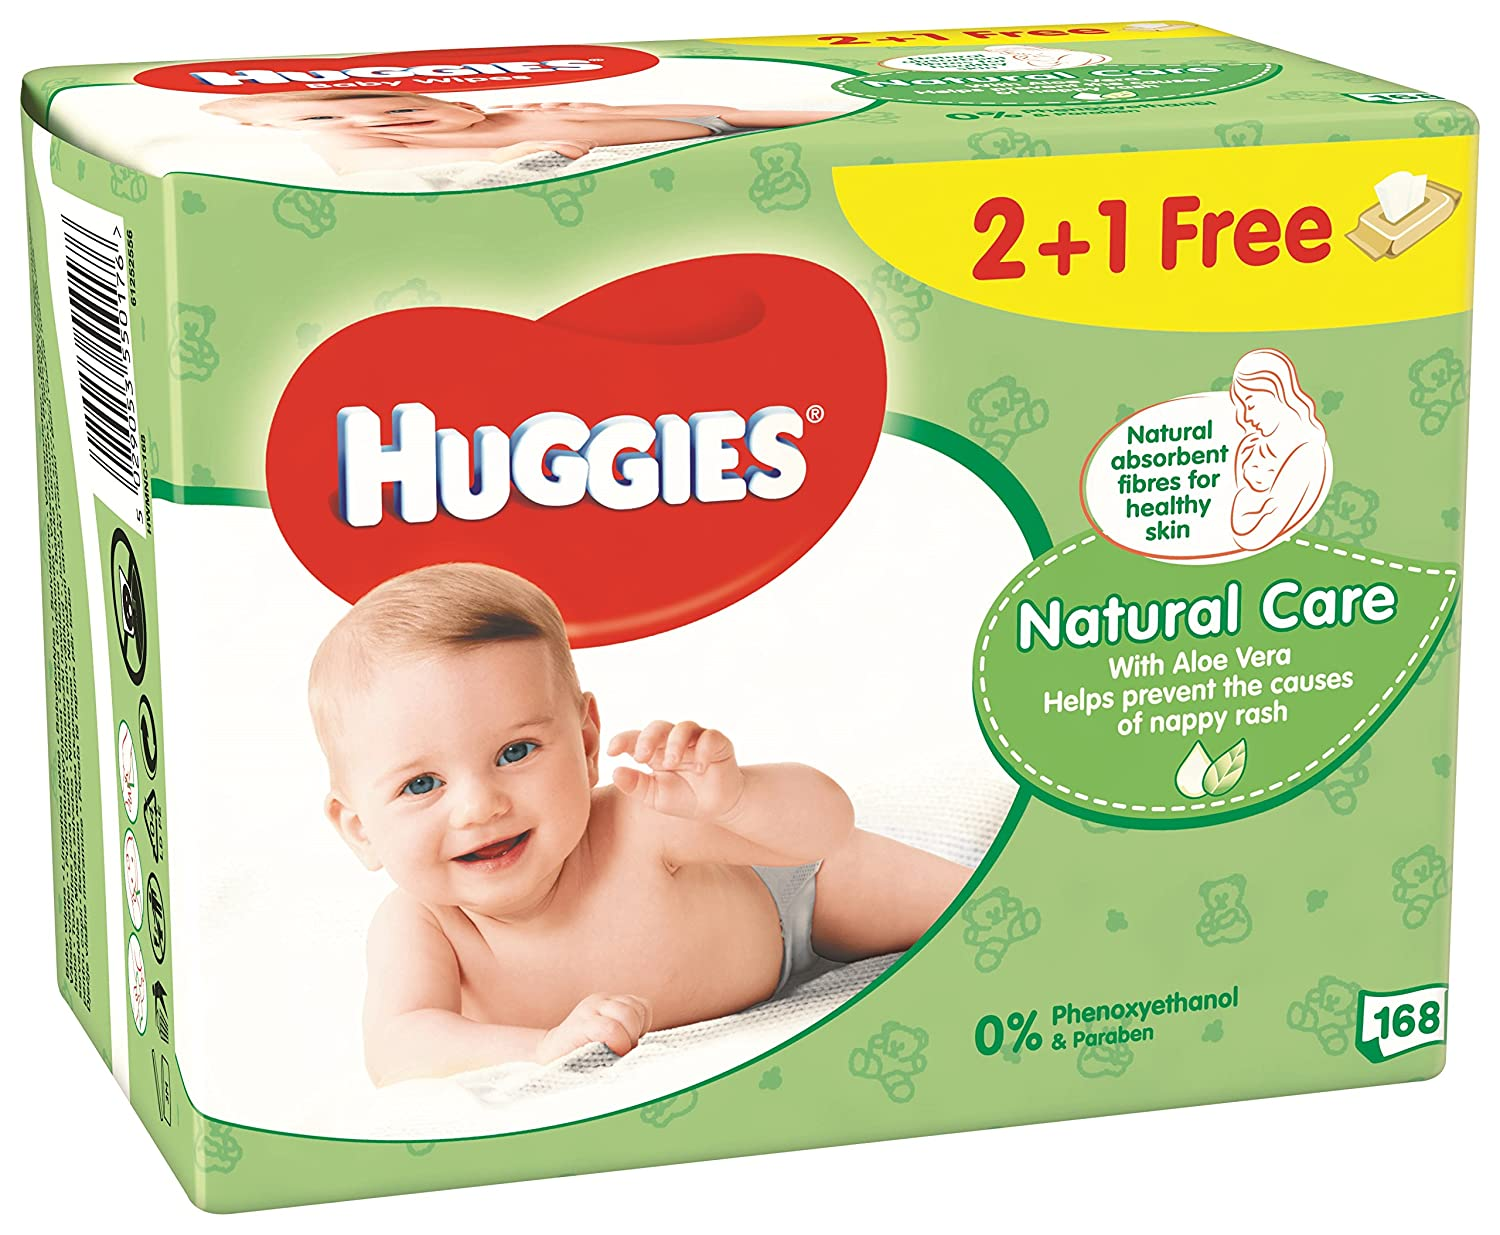 Huggies Natural Care Toallitas para Bebé - 3 Unidades: Amazon.es: Amazon Pantry